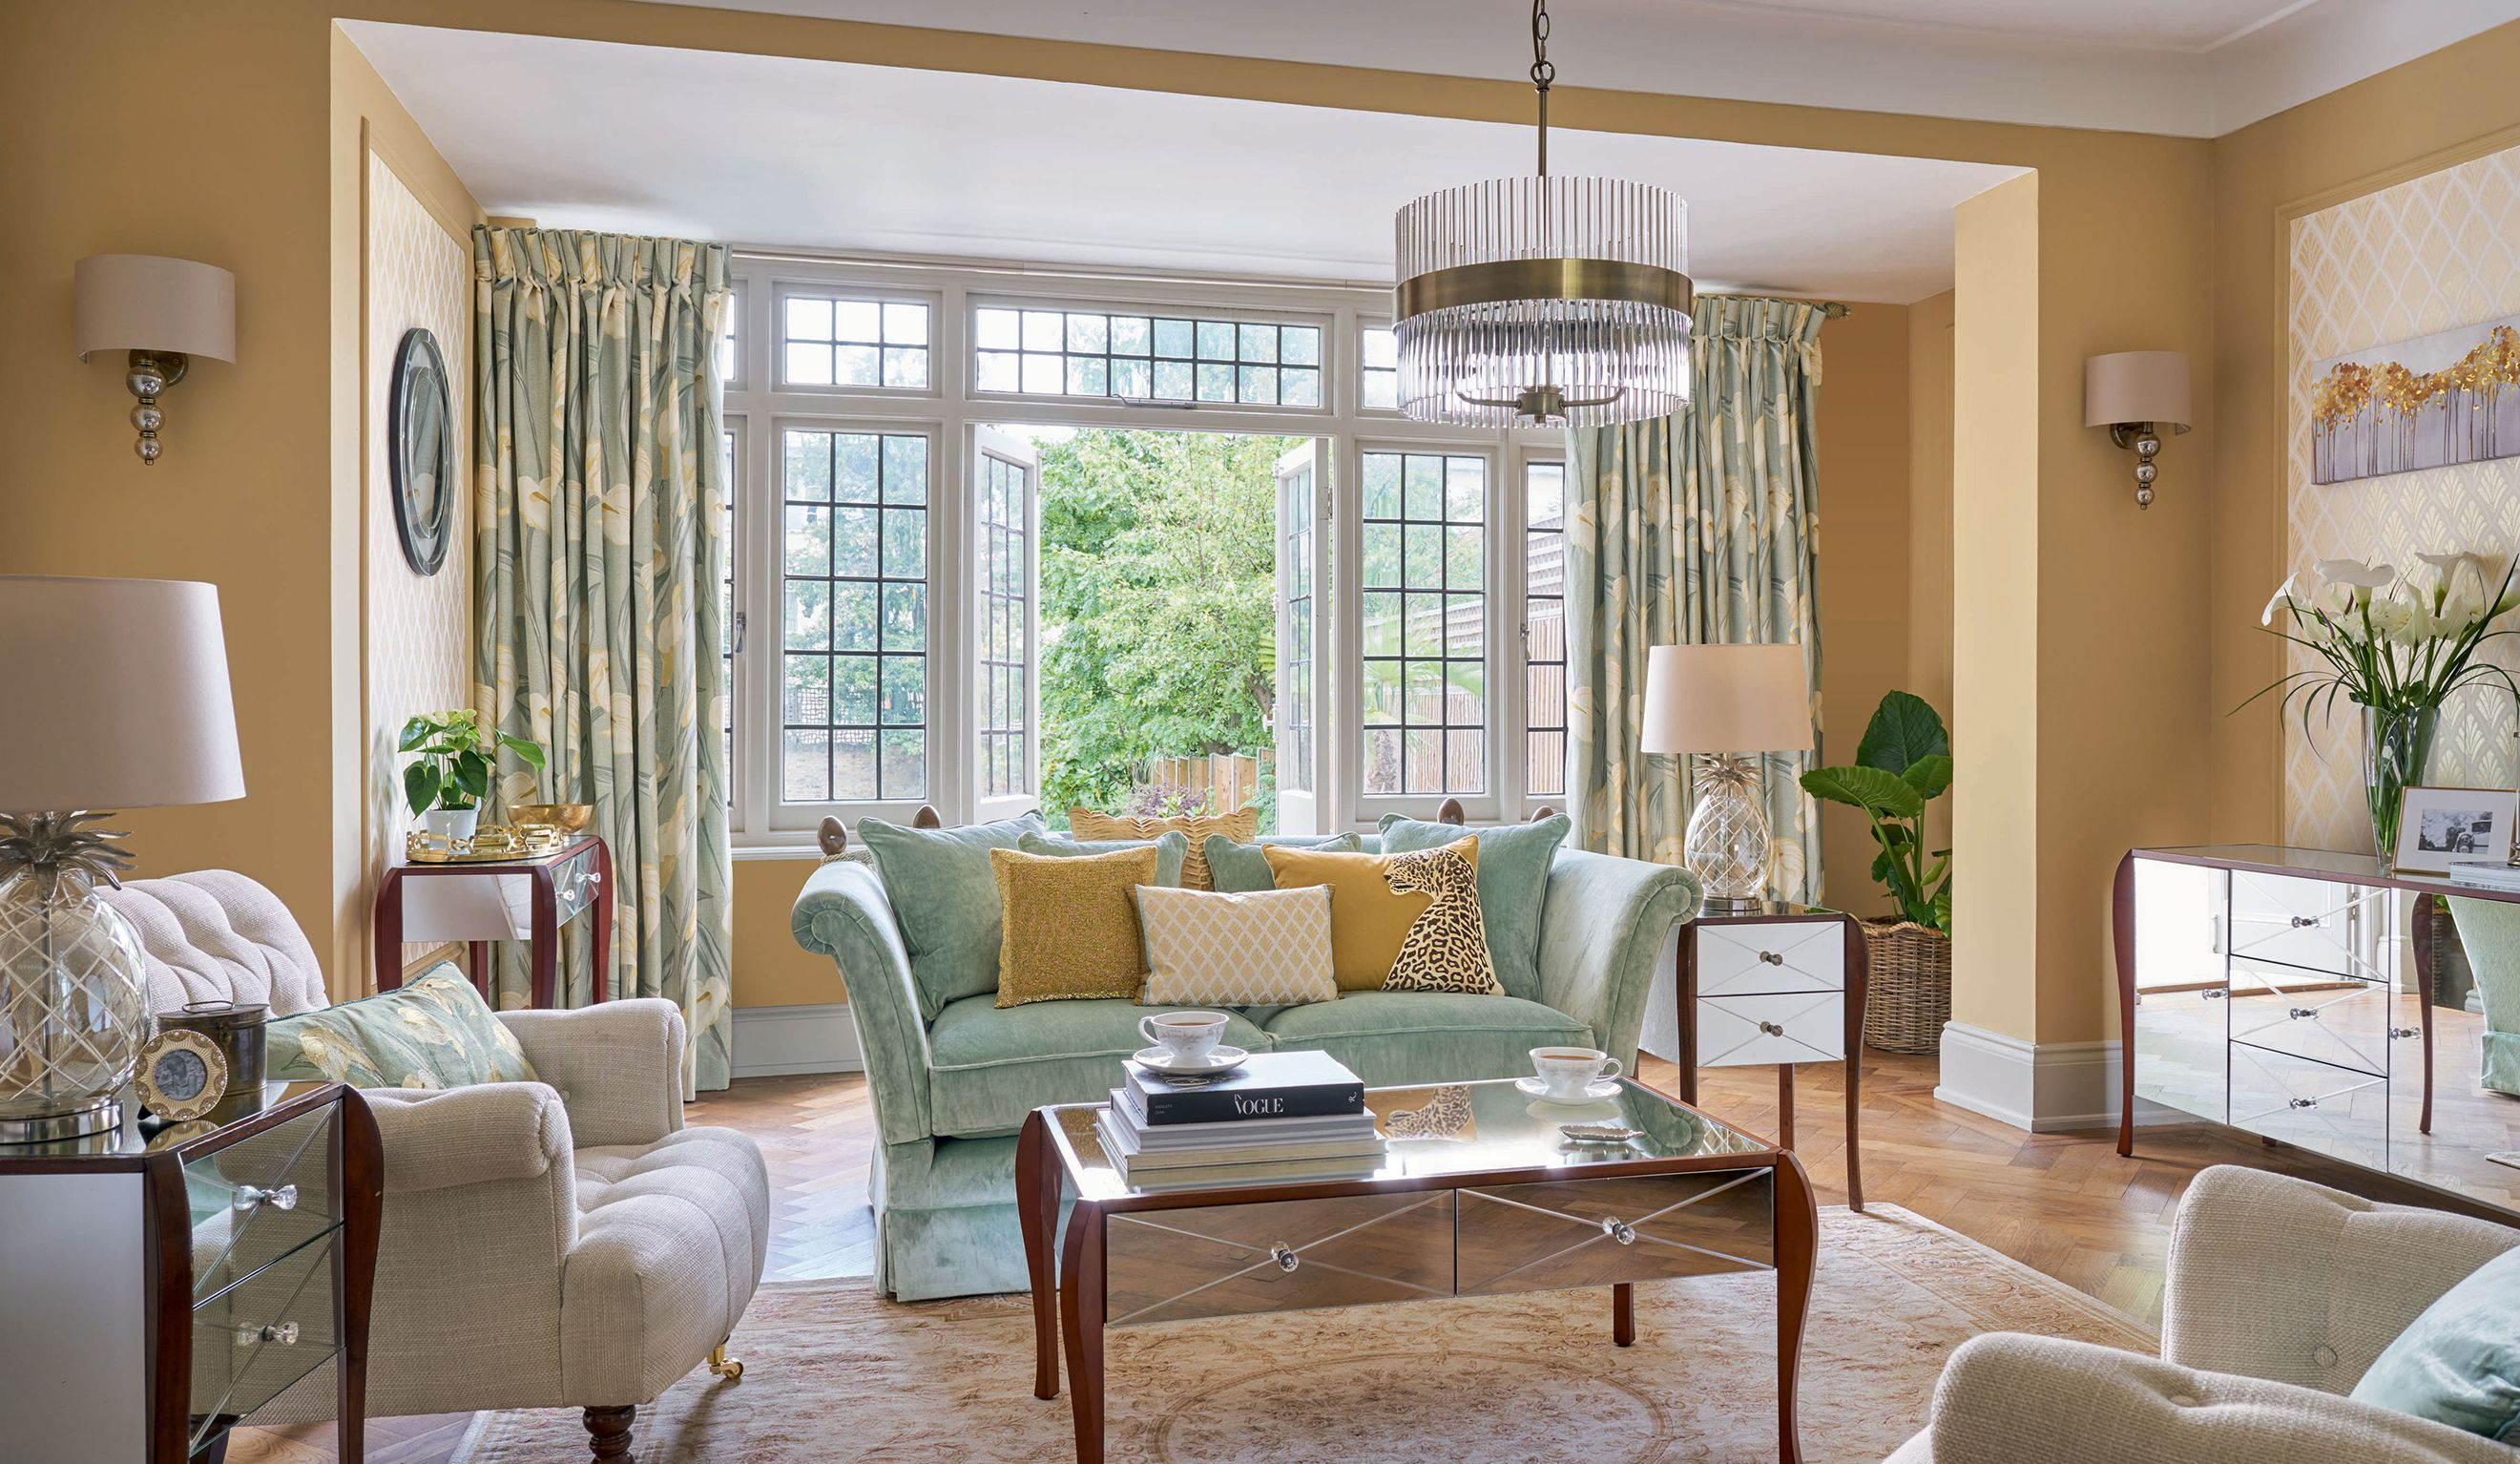 Laura Ashley Blog Living room ideas to fall in love with